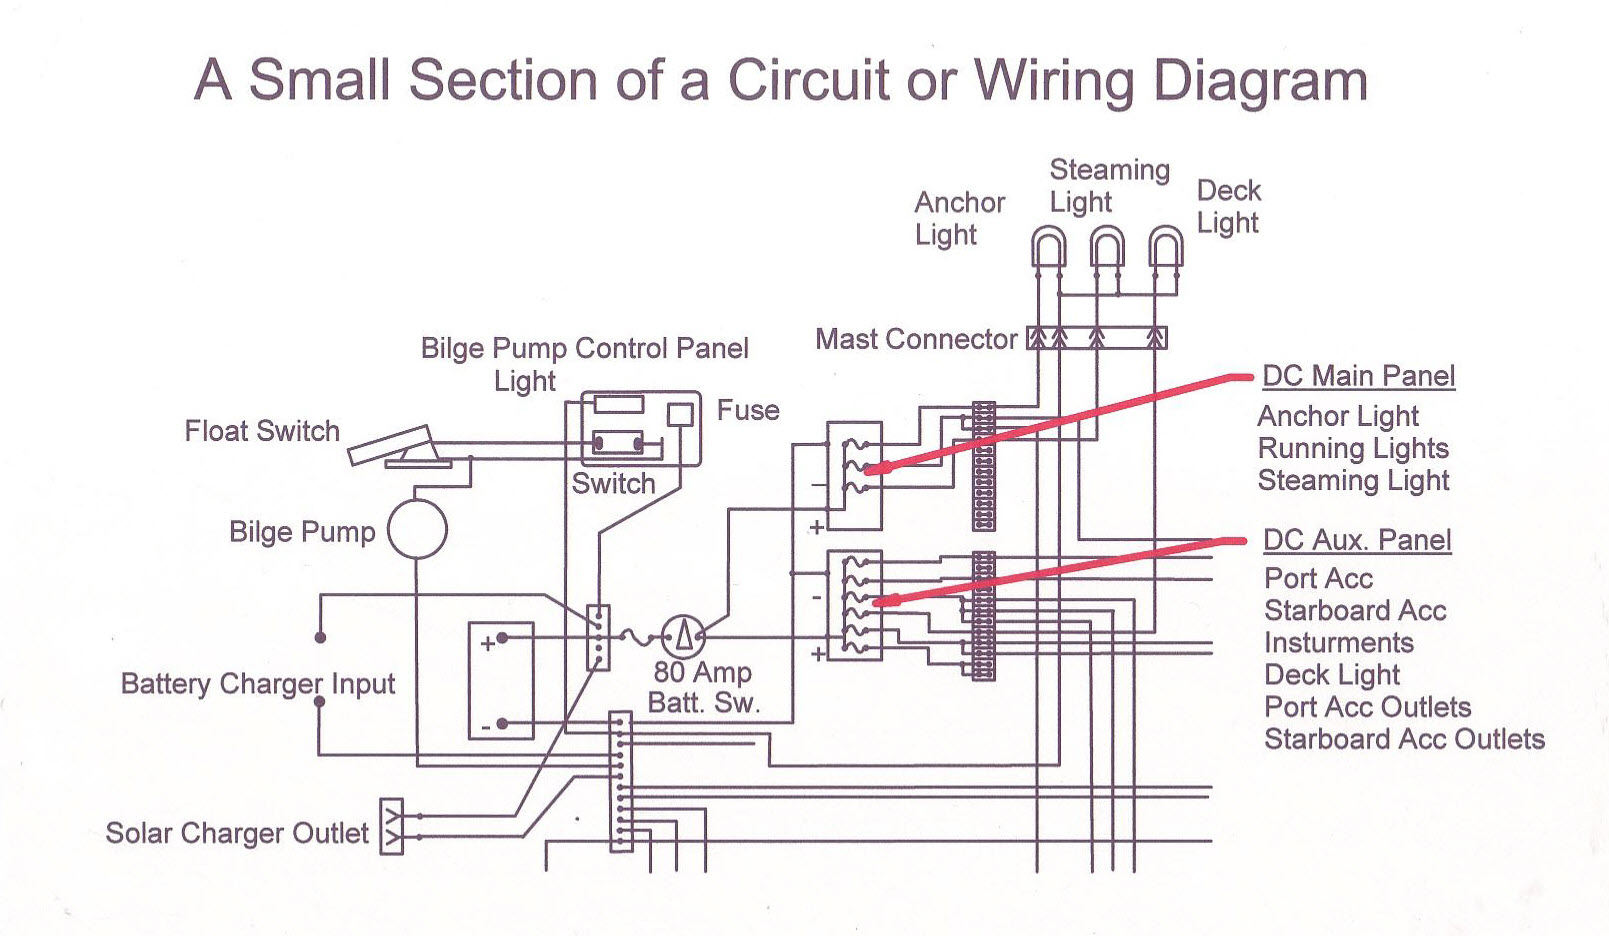 dc electrical system design: wiring your boat | boating world | current  issue